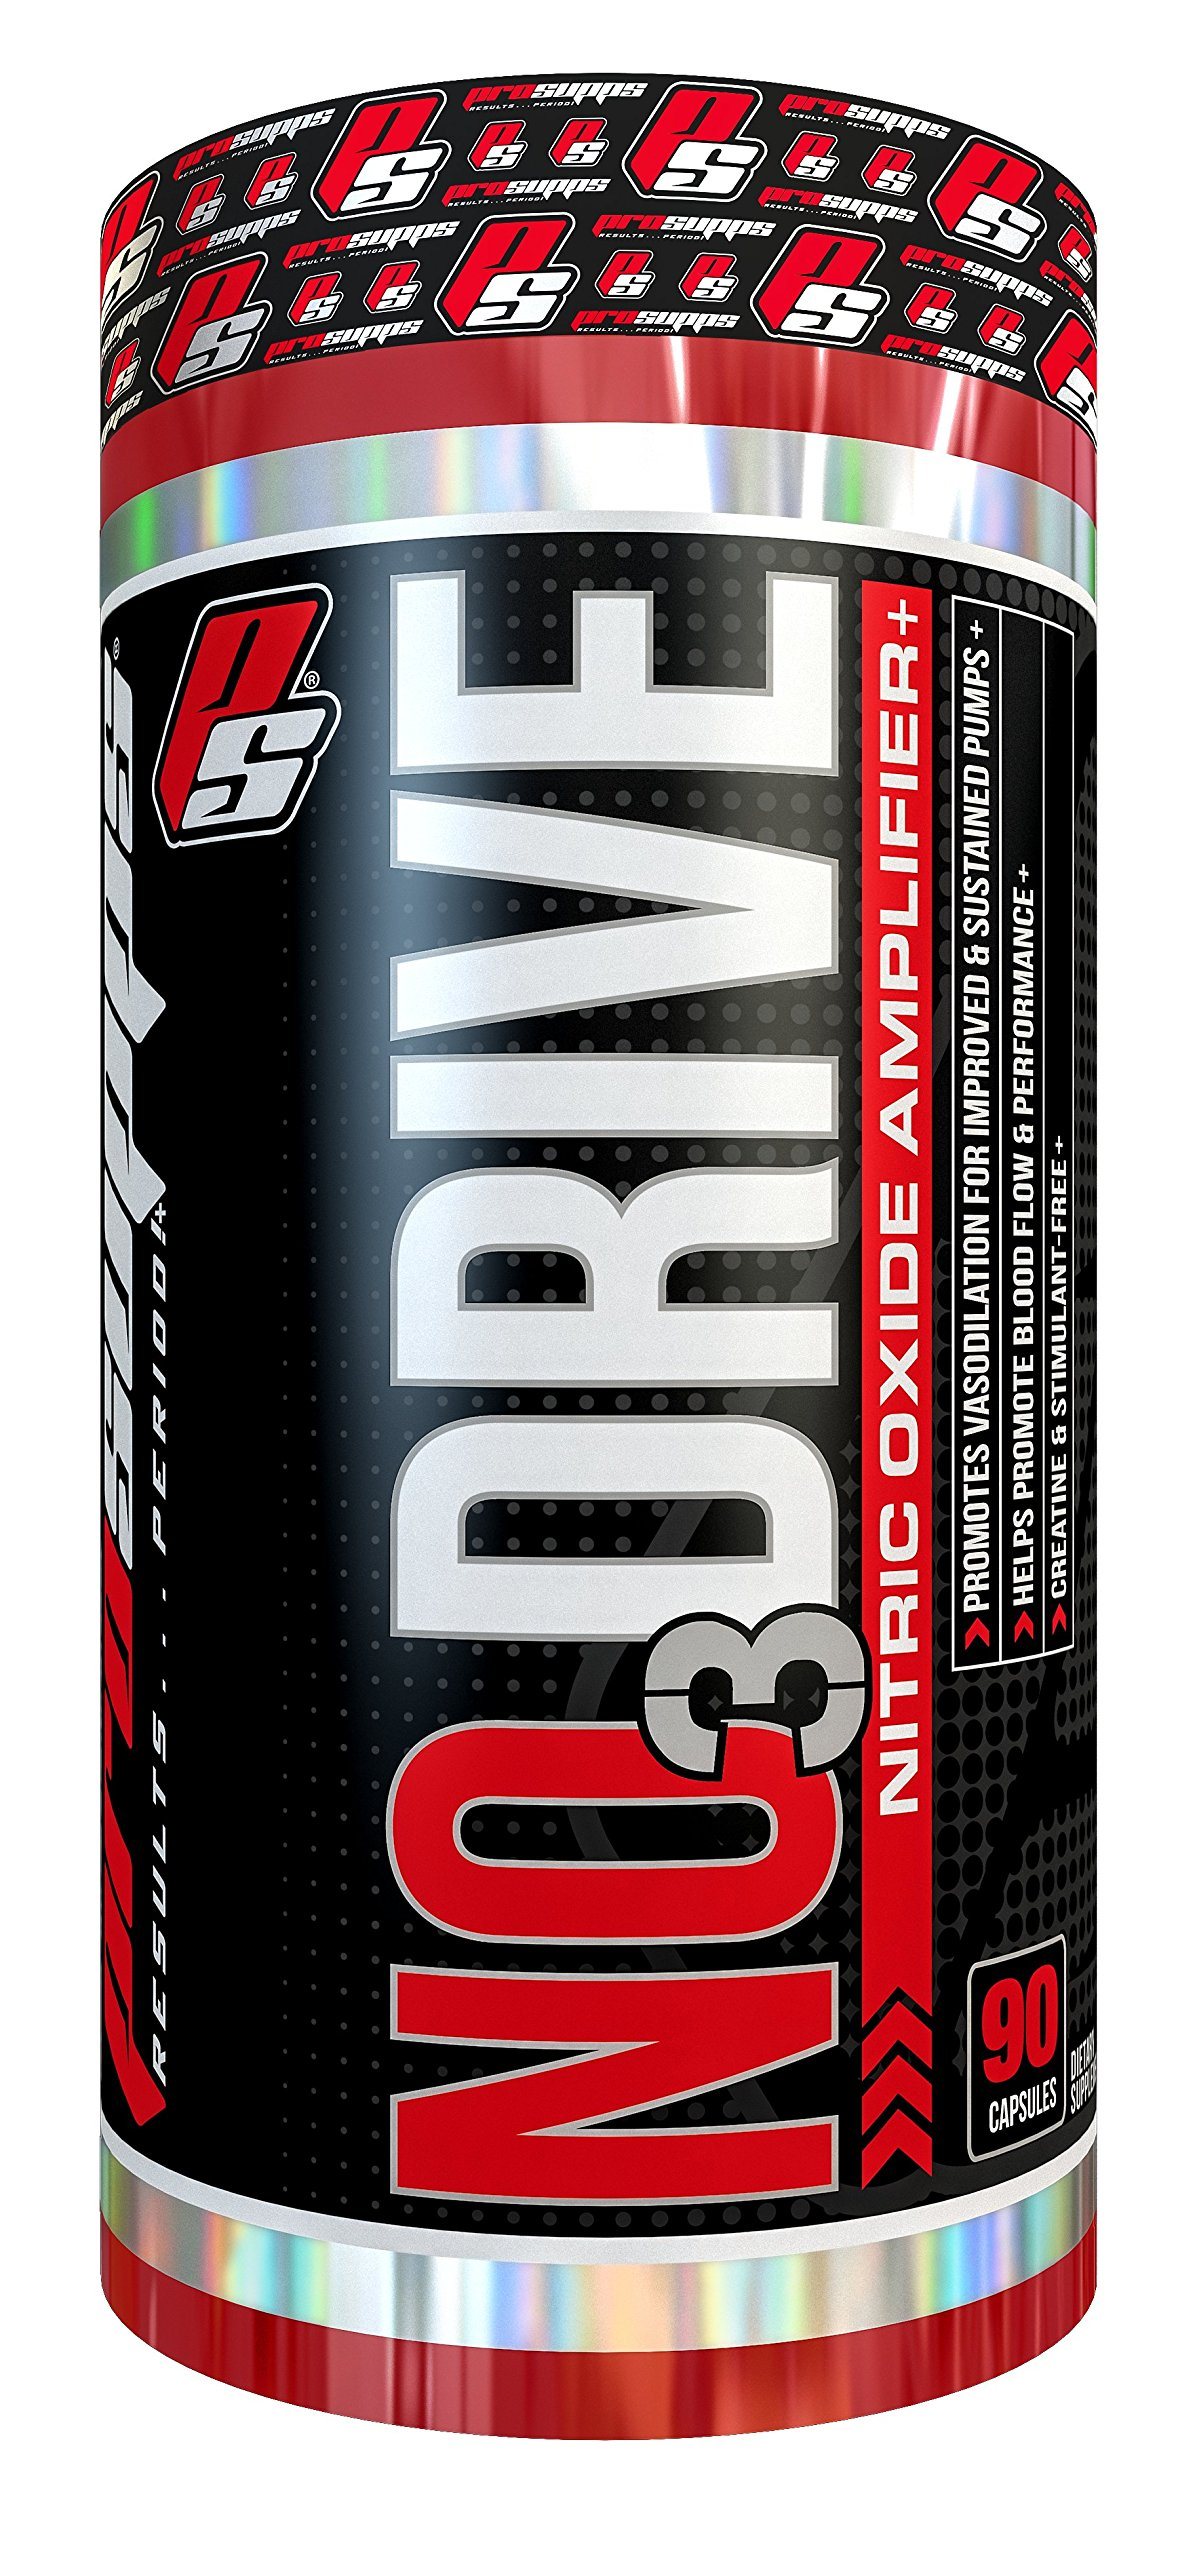 PRO SUPPS NO3 Drive Supplements, 90 Count by PROSUPPS